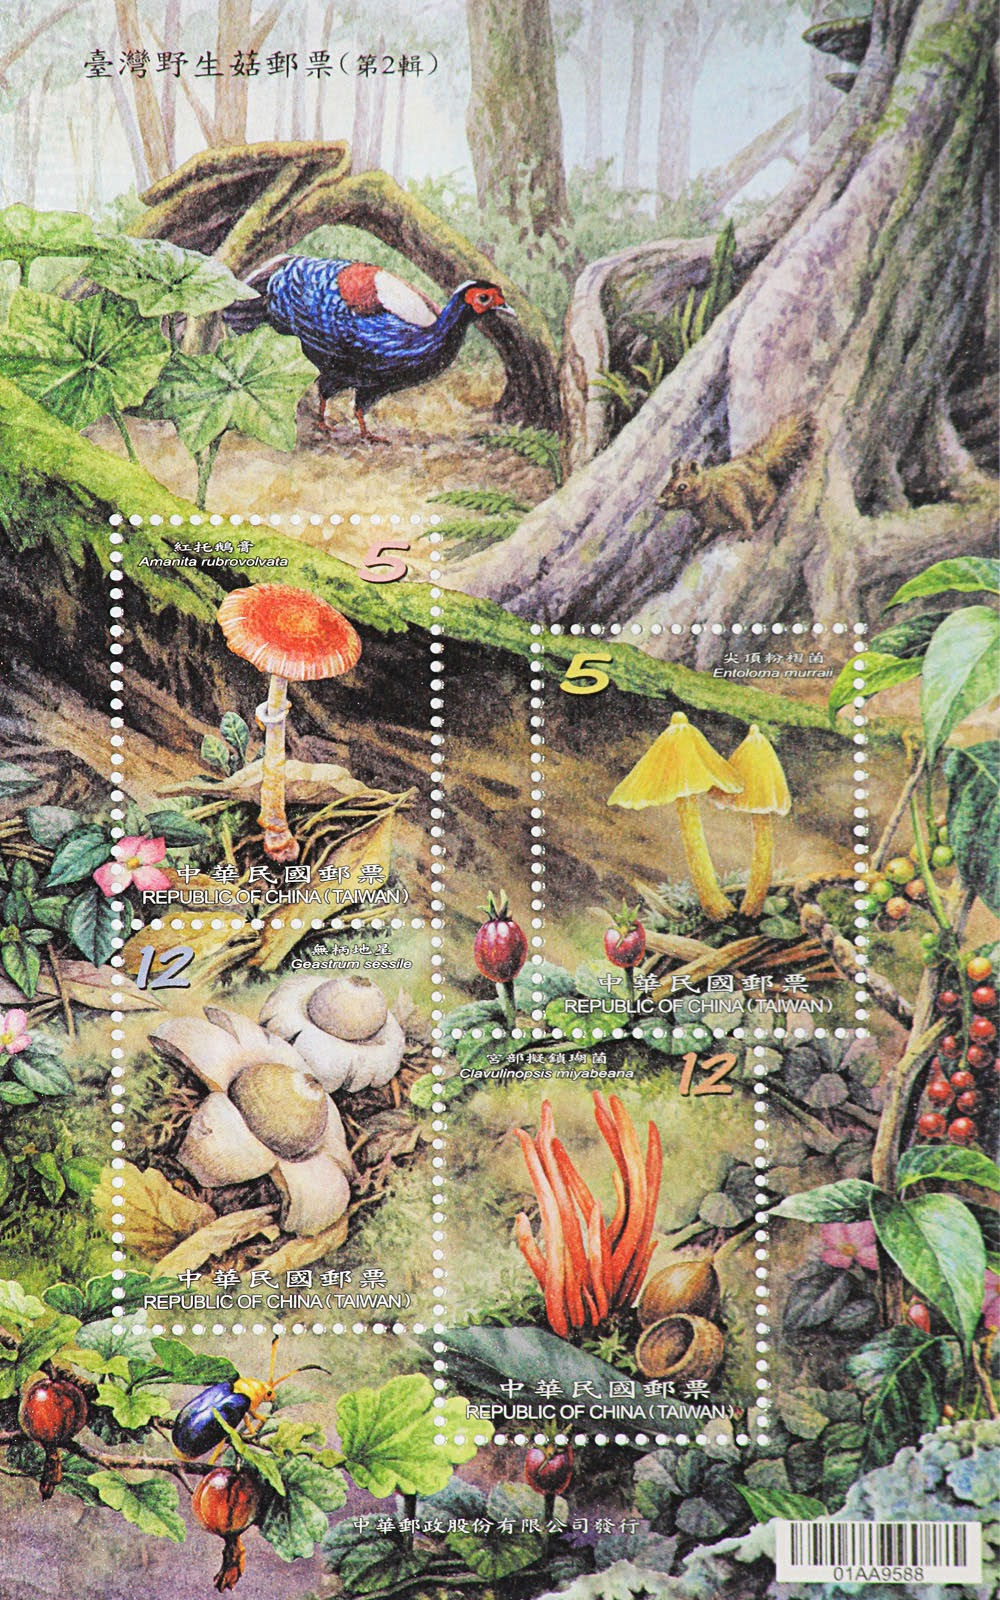 2012 Wild Mushrooms of Taiwan Miniature Sheet